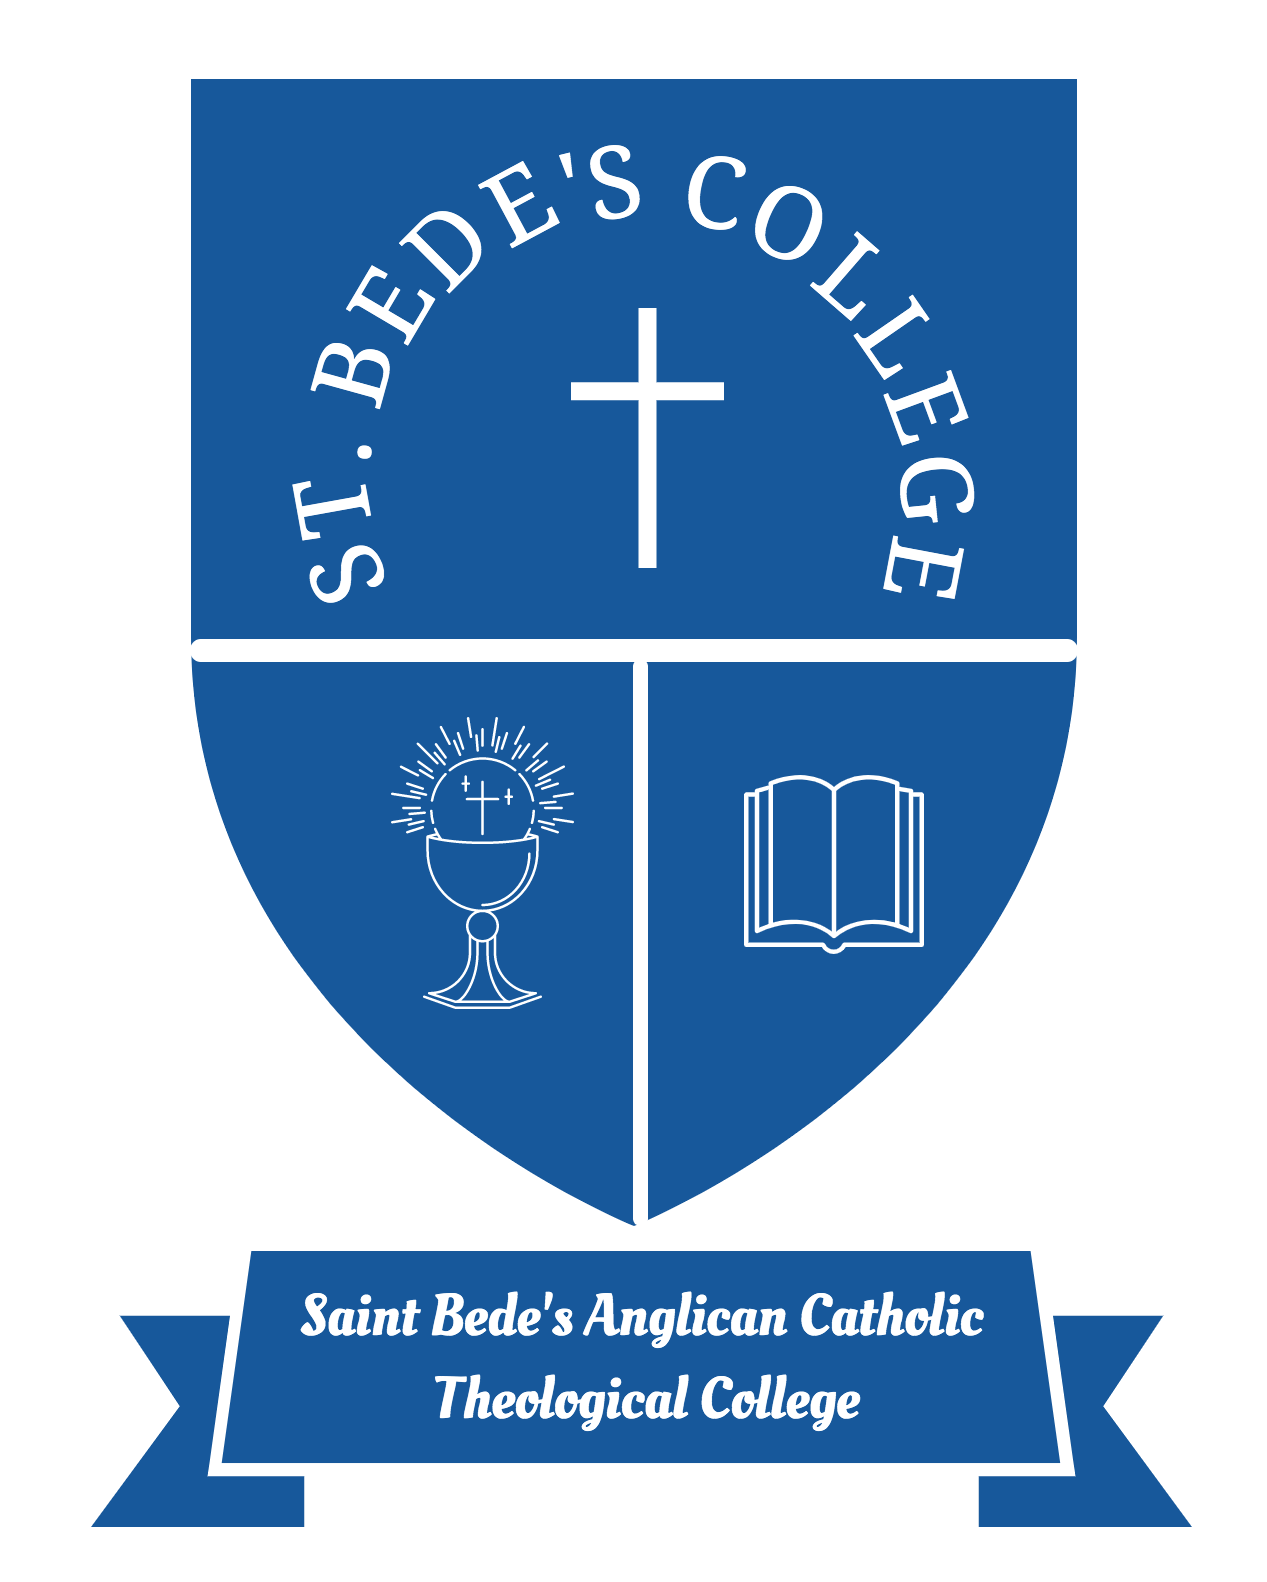 St. Bede's Anglican Catholic Theological College logo